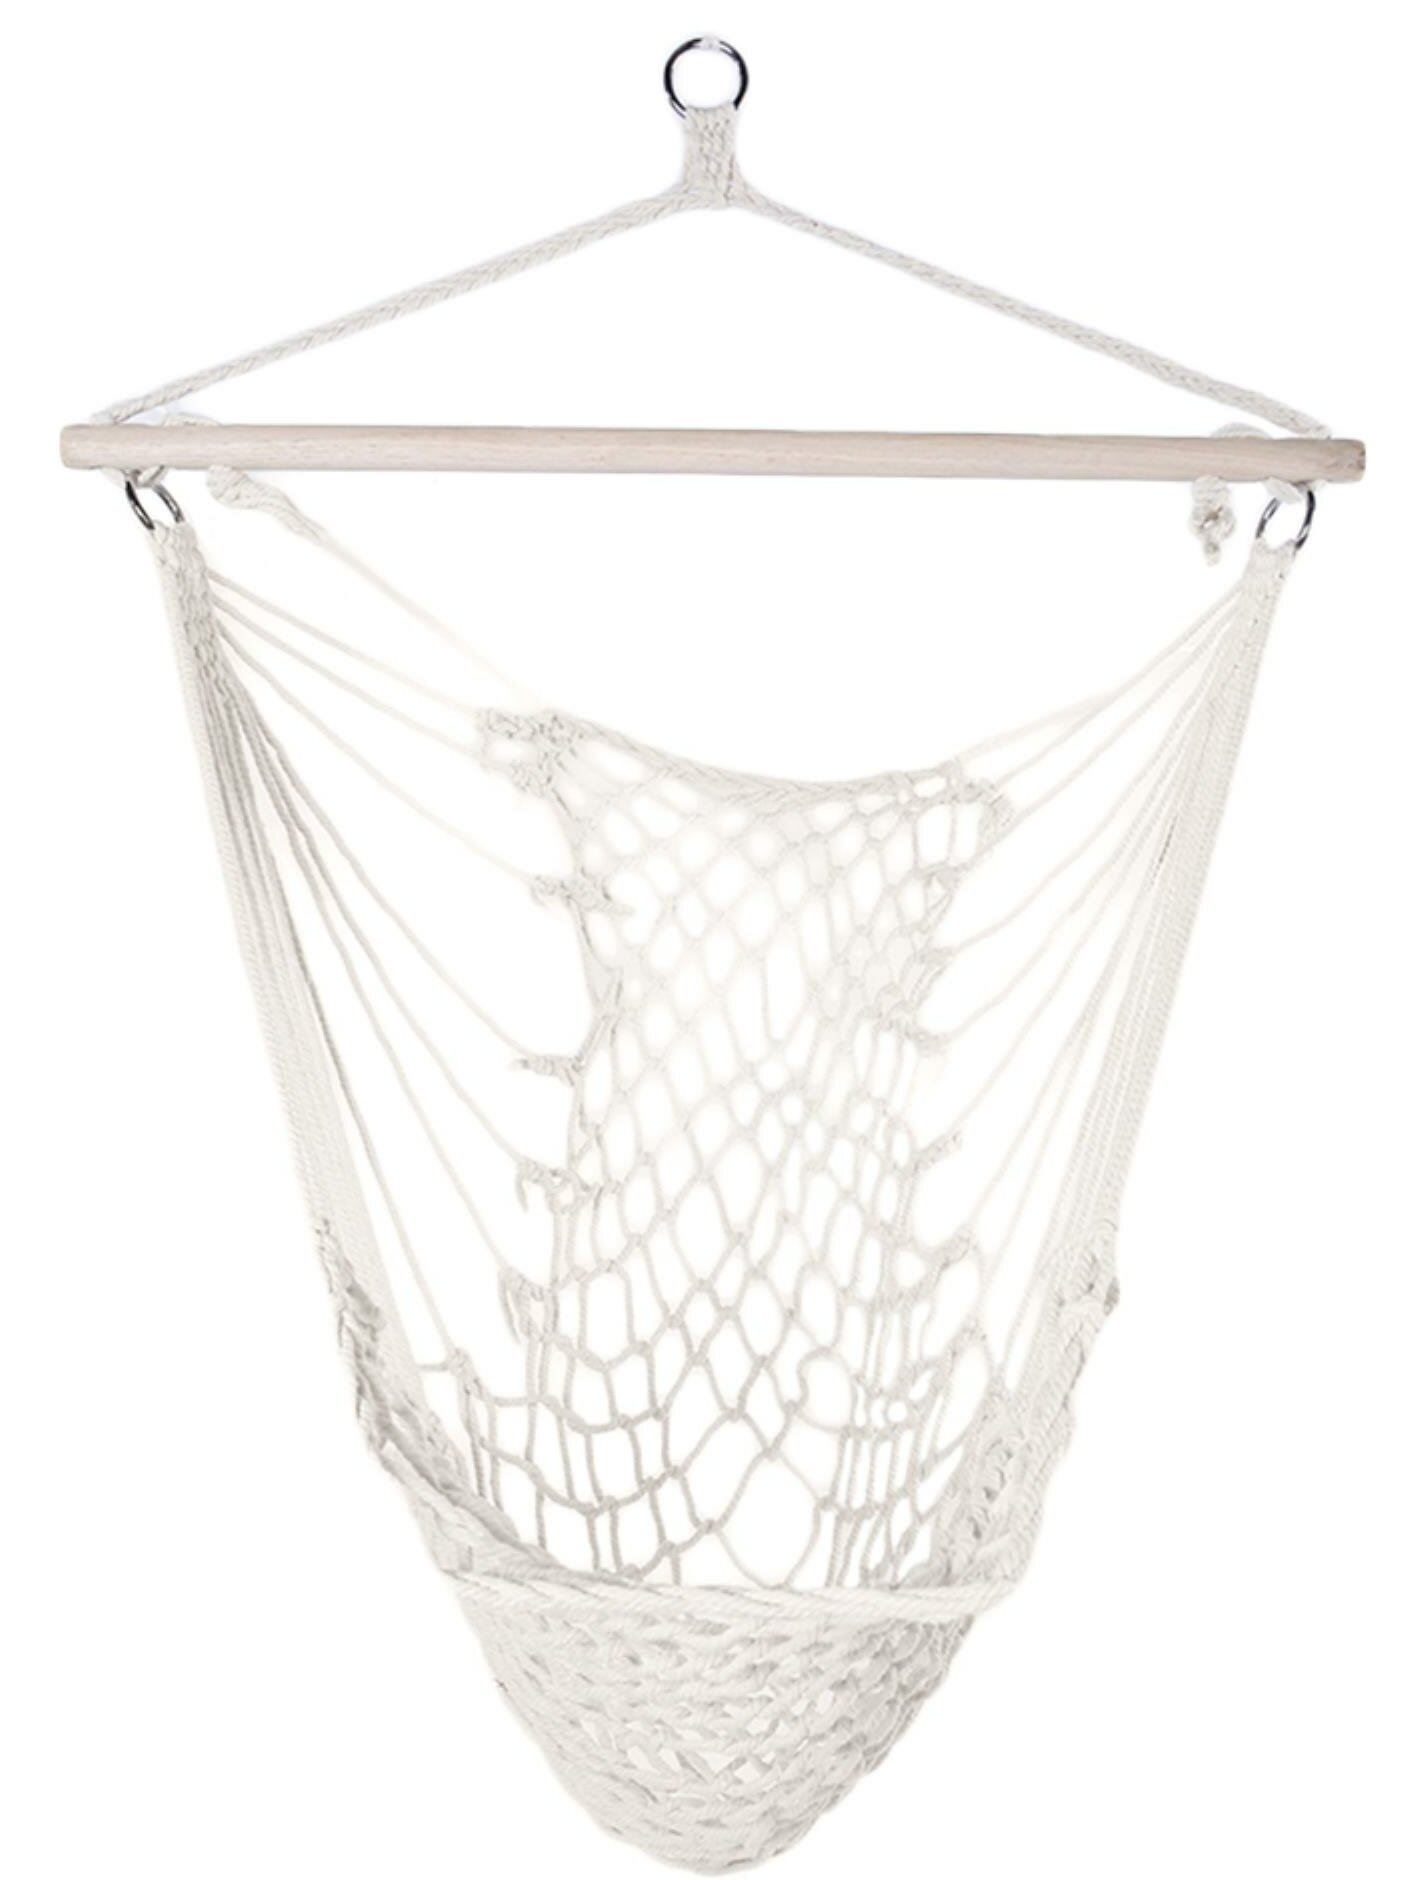 Bungalow Rose Flythe Cotton Hanging Rope Air Sky Swing Chair Hammock Reviews